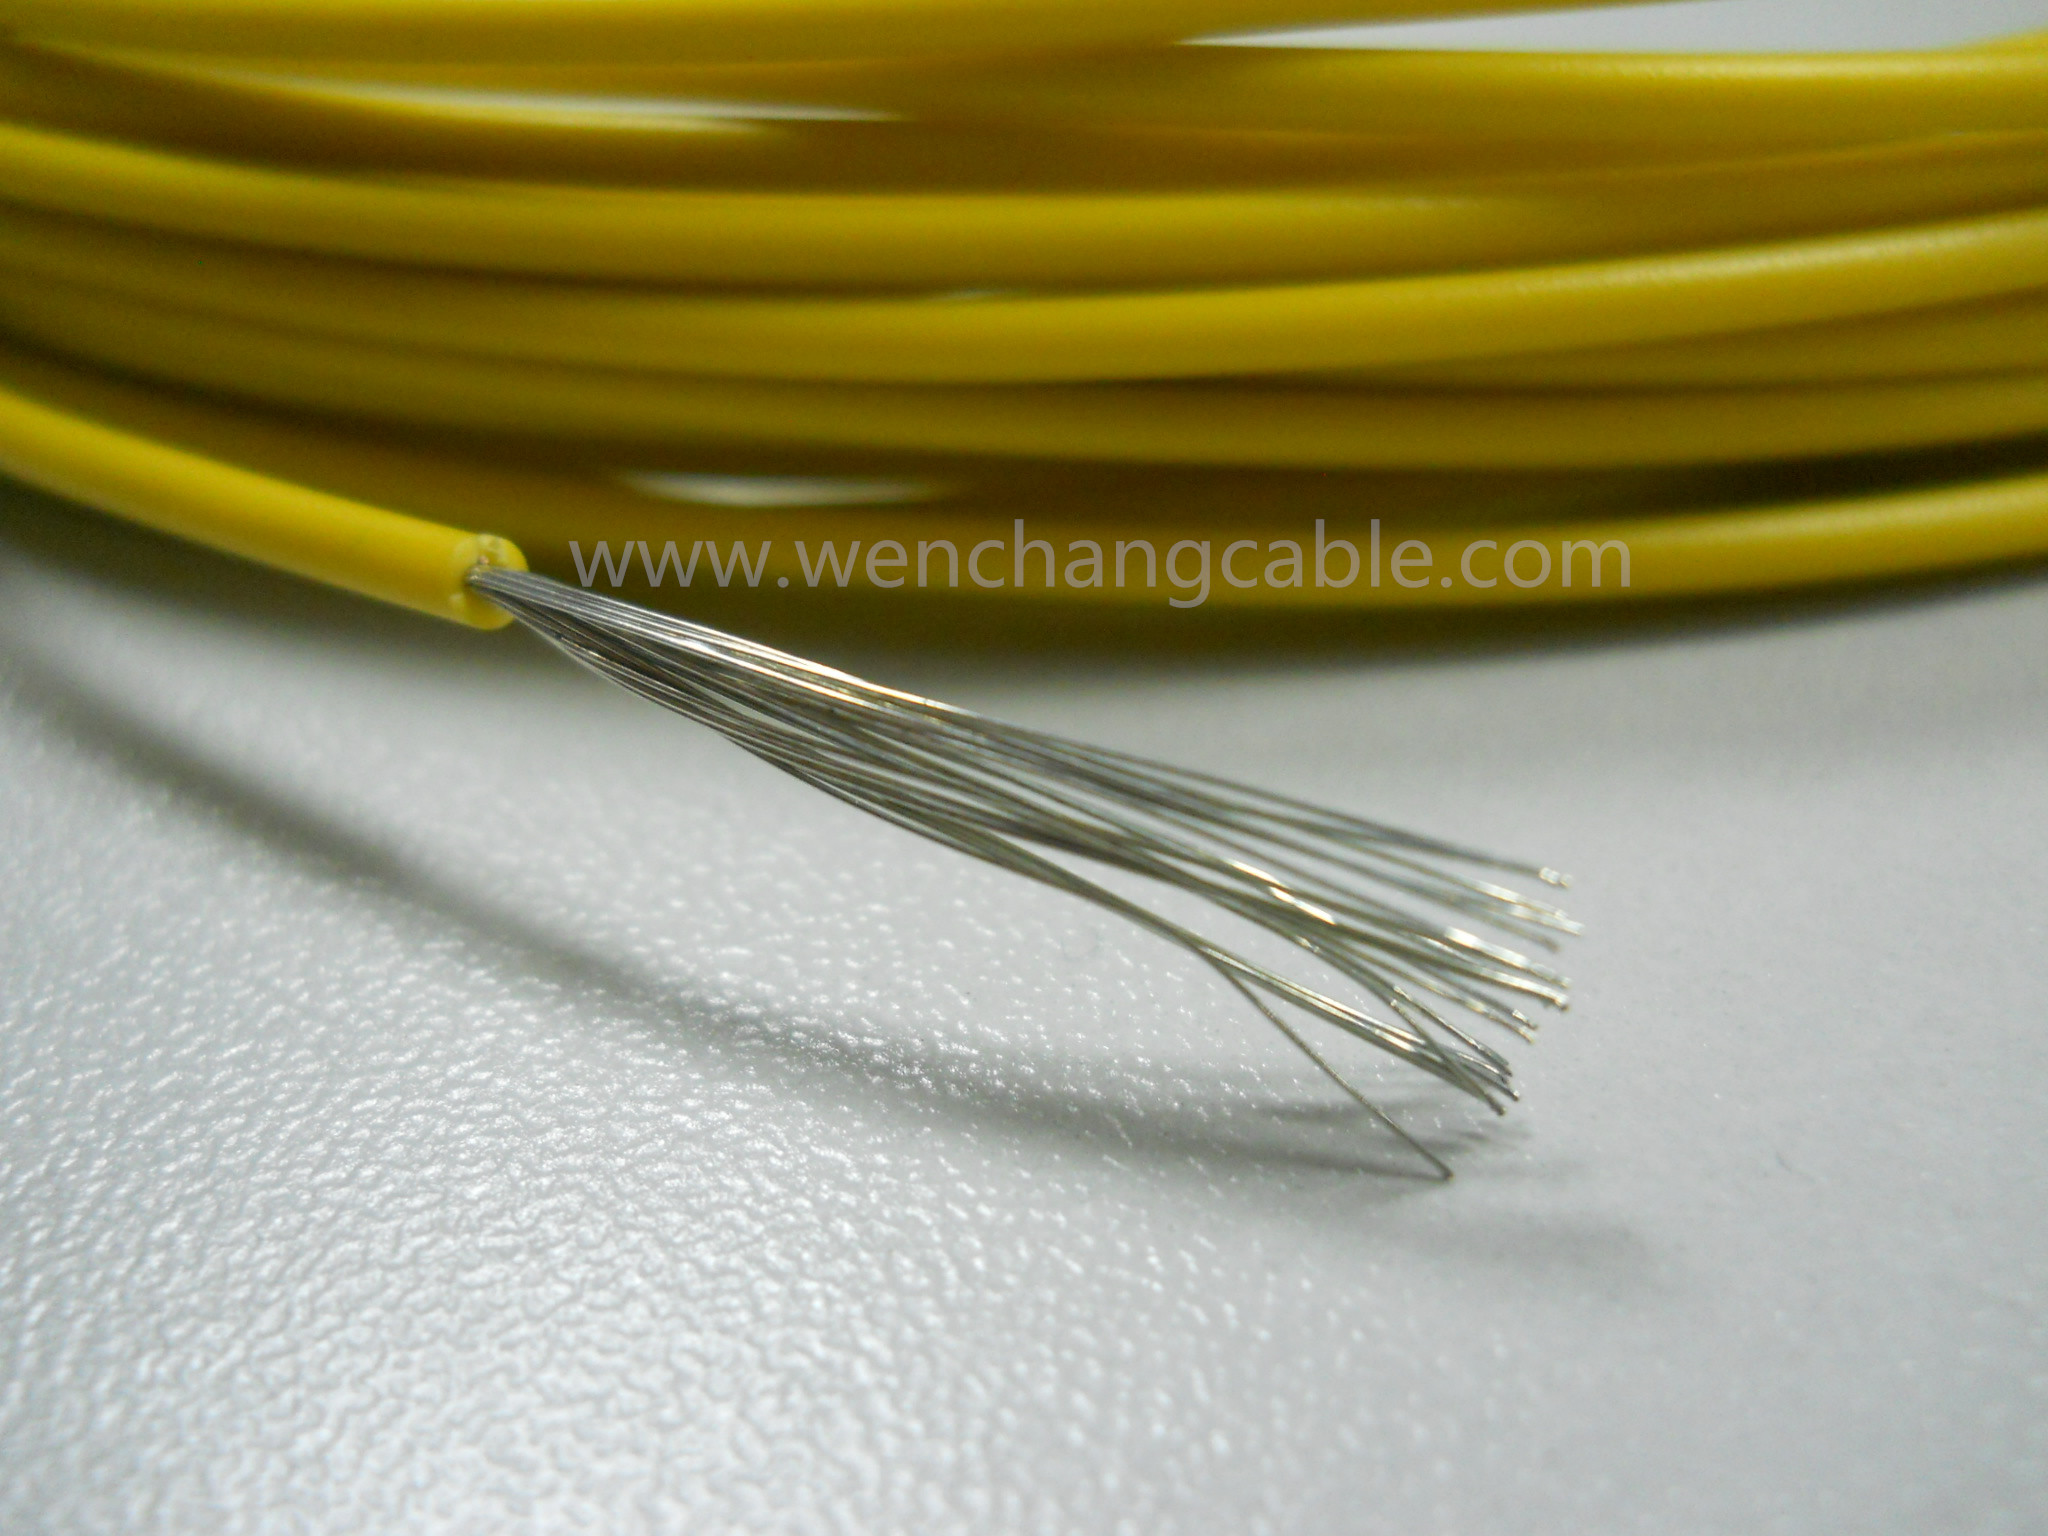 The Relationship between teflon wire quality and sheath thickness